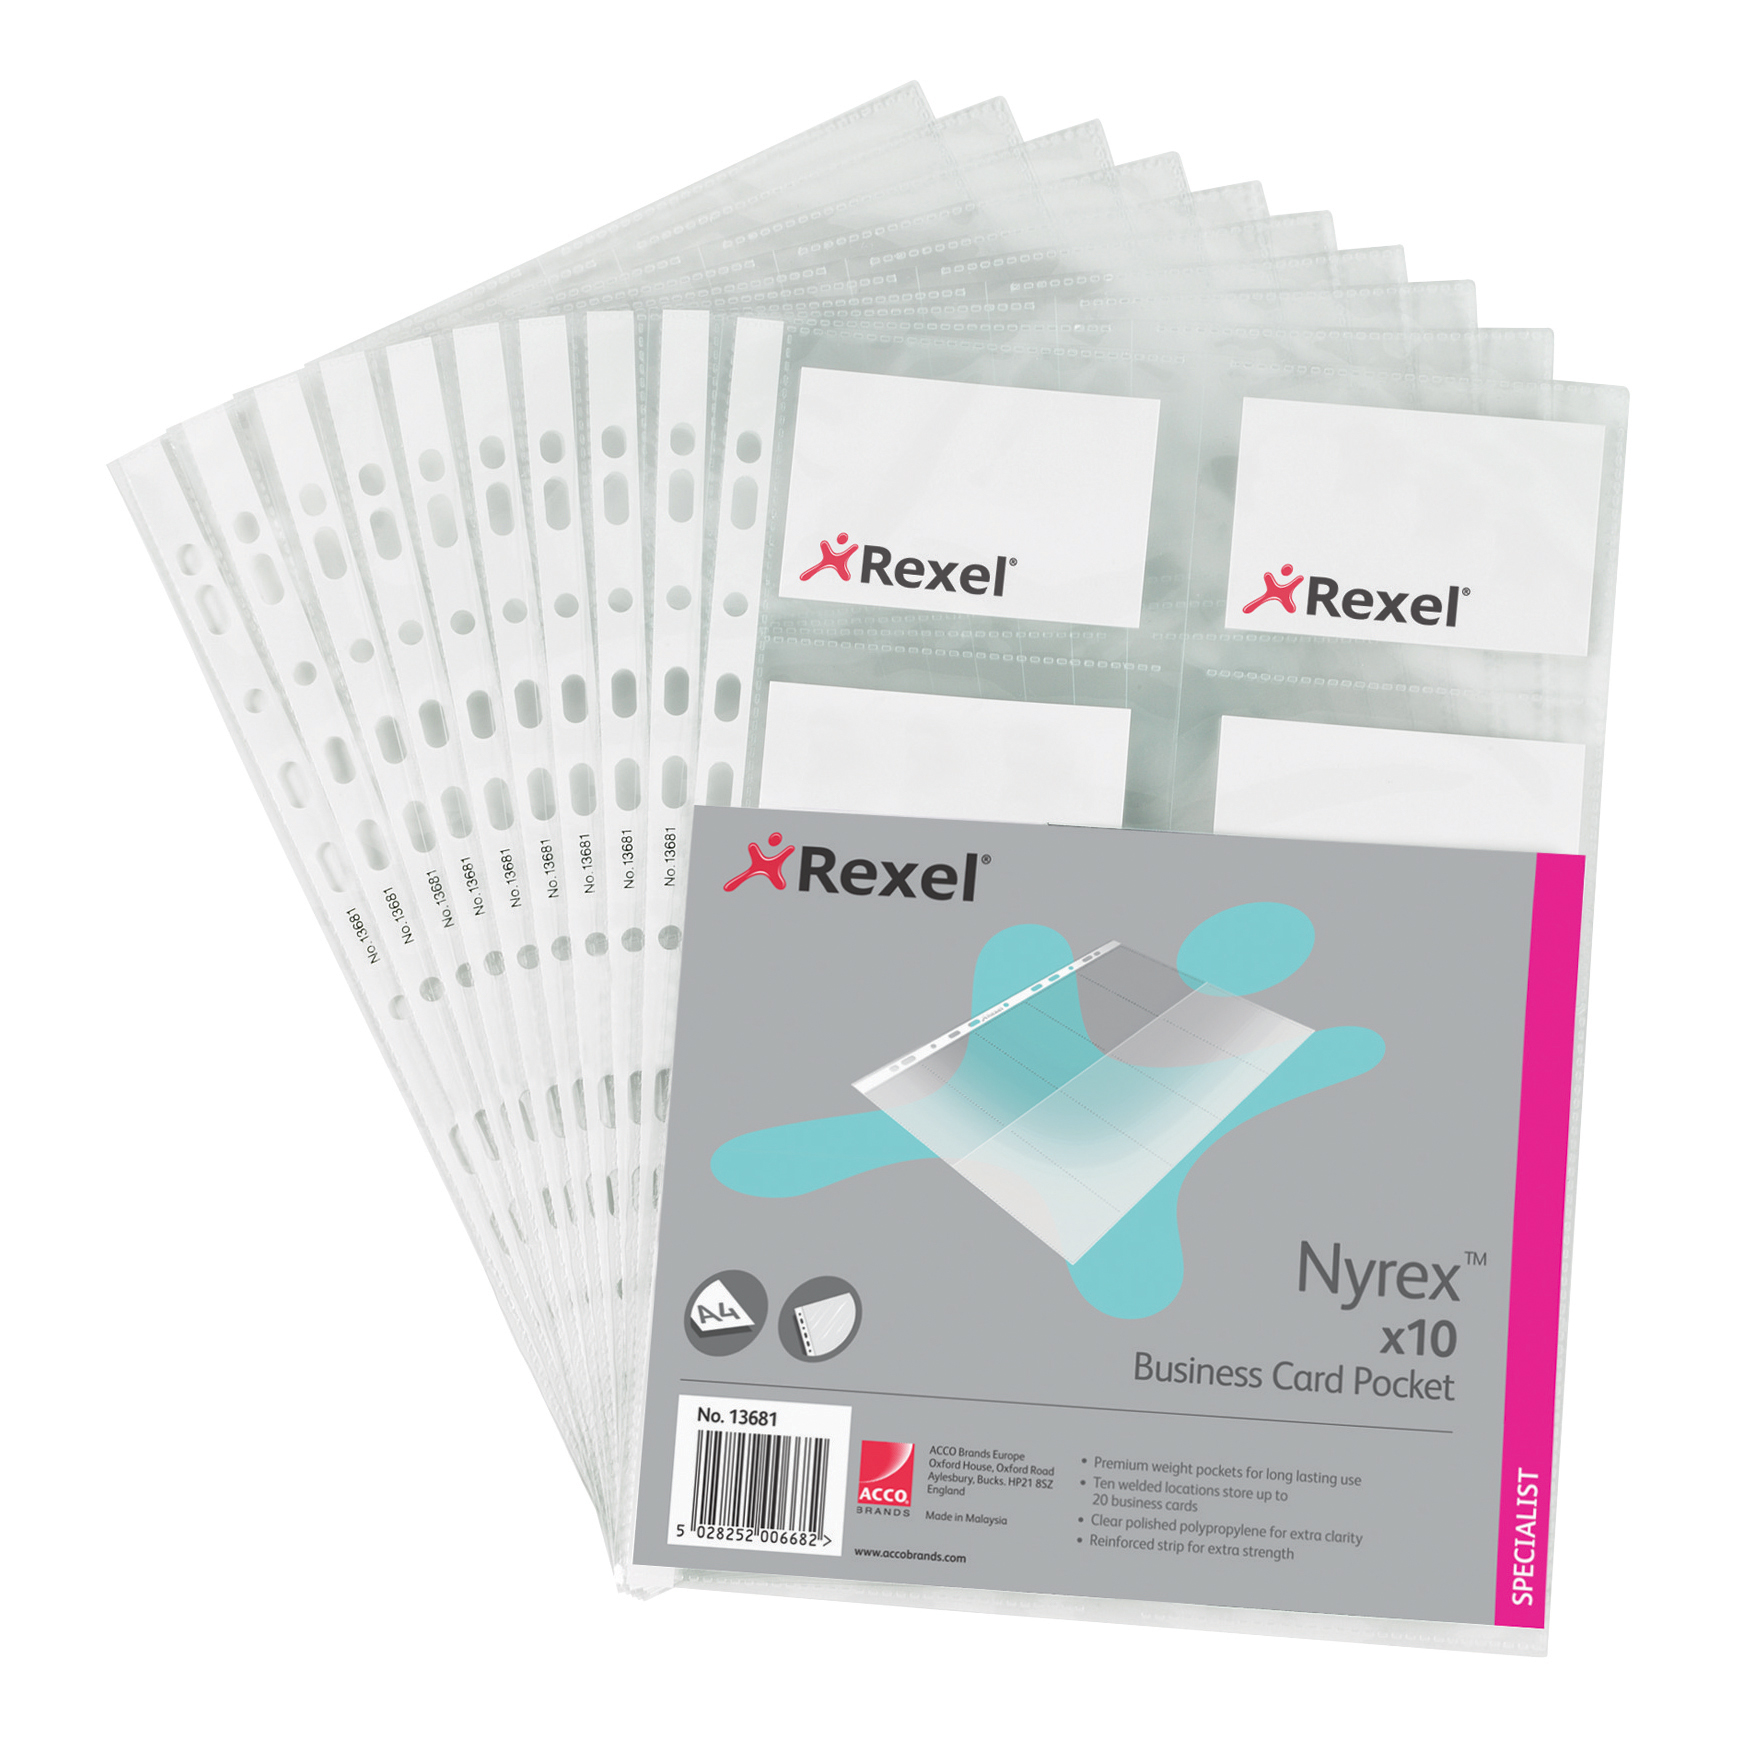 Rexel Nyrex Business Card Pocket Multipunched A4 Clear Ref 13681 [Pack 10]